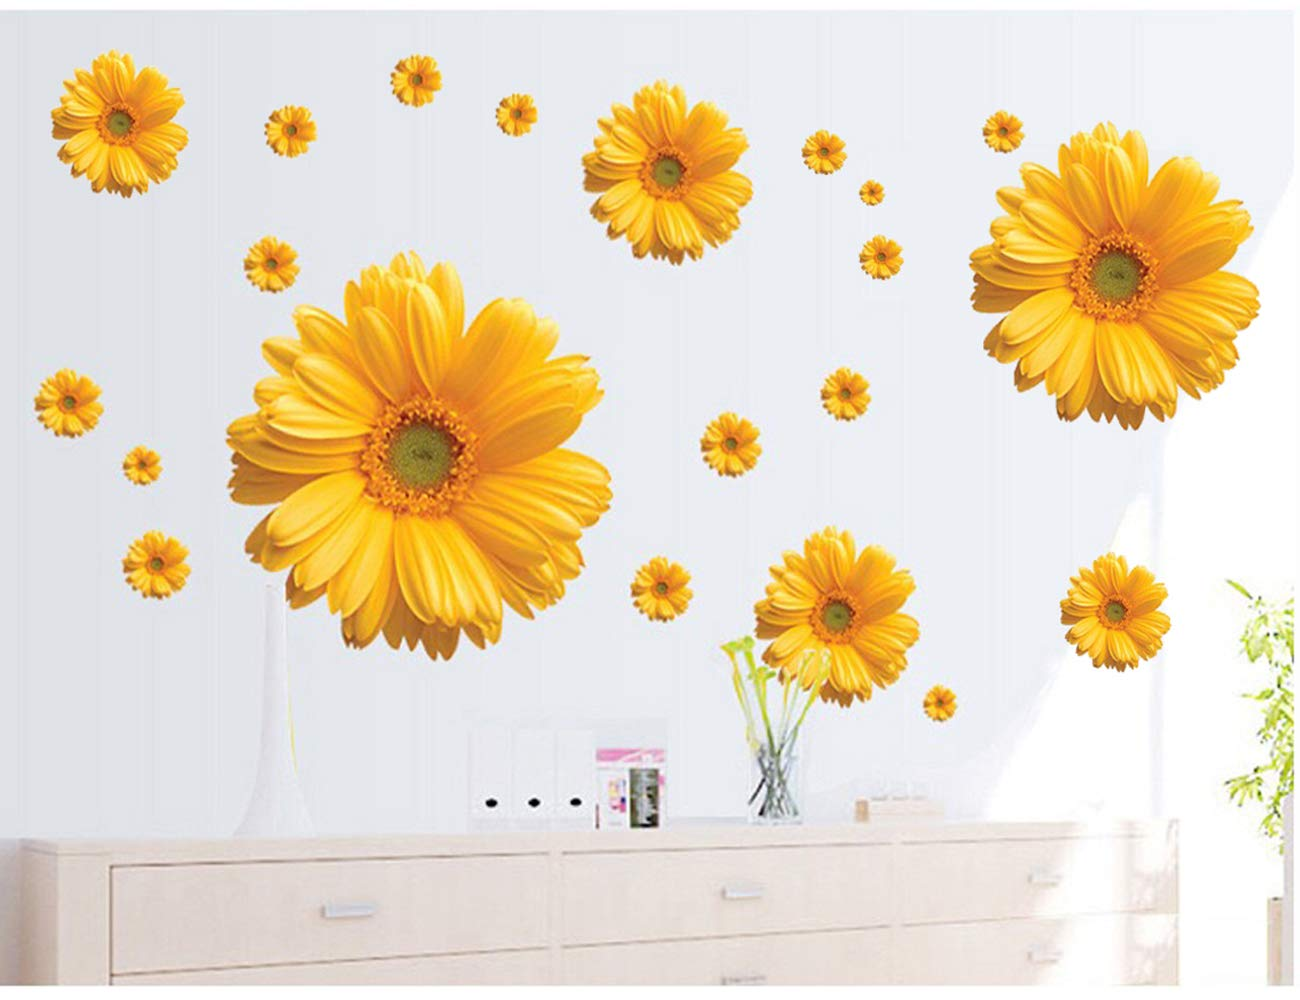 2Sets 3D Daisy Flowers Wall Stickers Sunflower Wall Decals Yellow Red Pink Daisy Sunflower Wall Stickers Peel and Stick Removable Stickers for Nursery Kids Room Living Room (Yellow(2pcs))